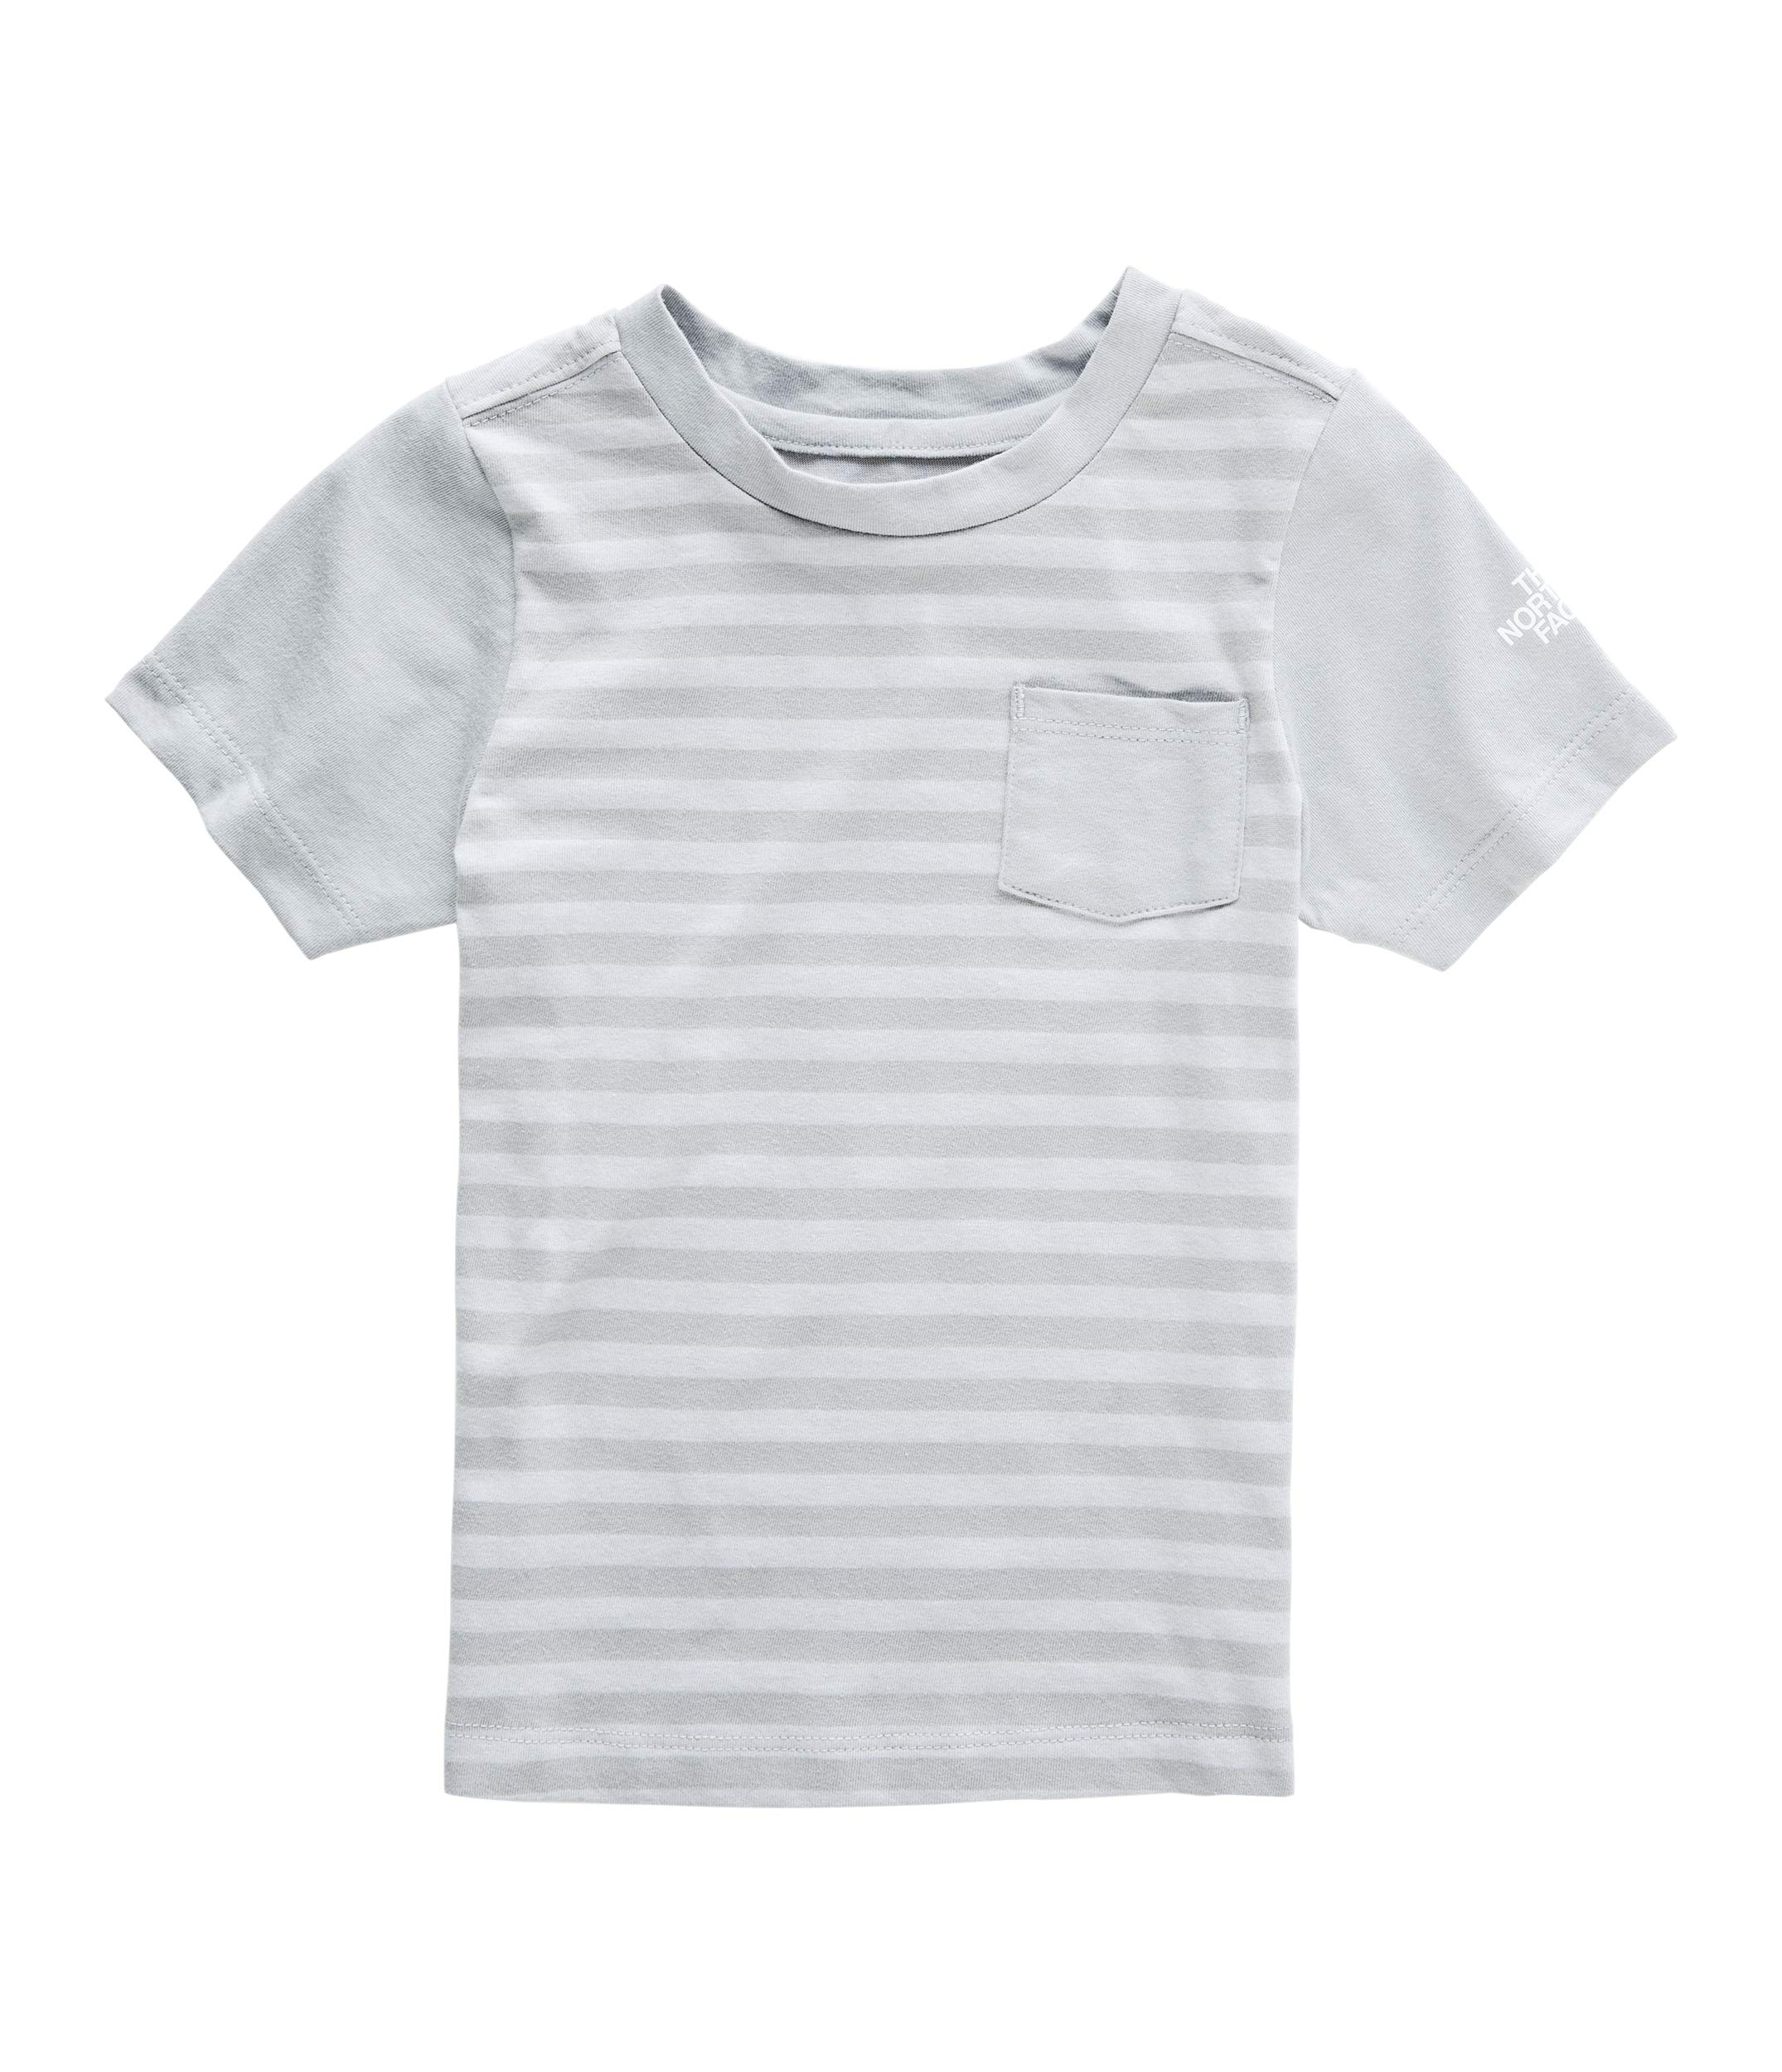 The North Face Toddler Short Sleeve Pocket Tee, Mid Grey Stripe, Size 3T by The North Face